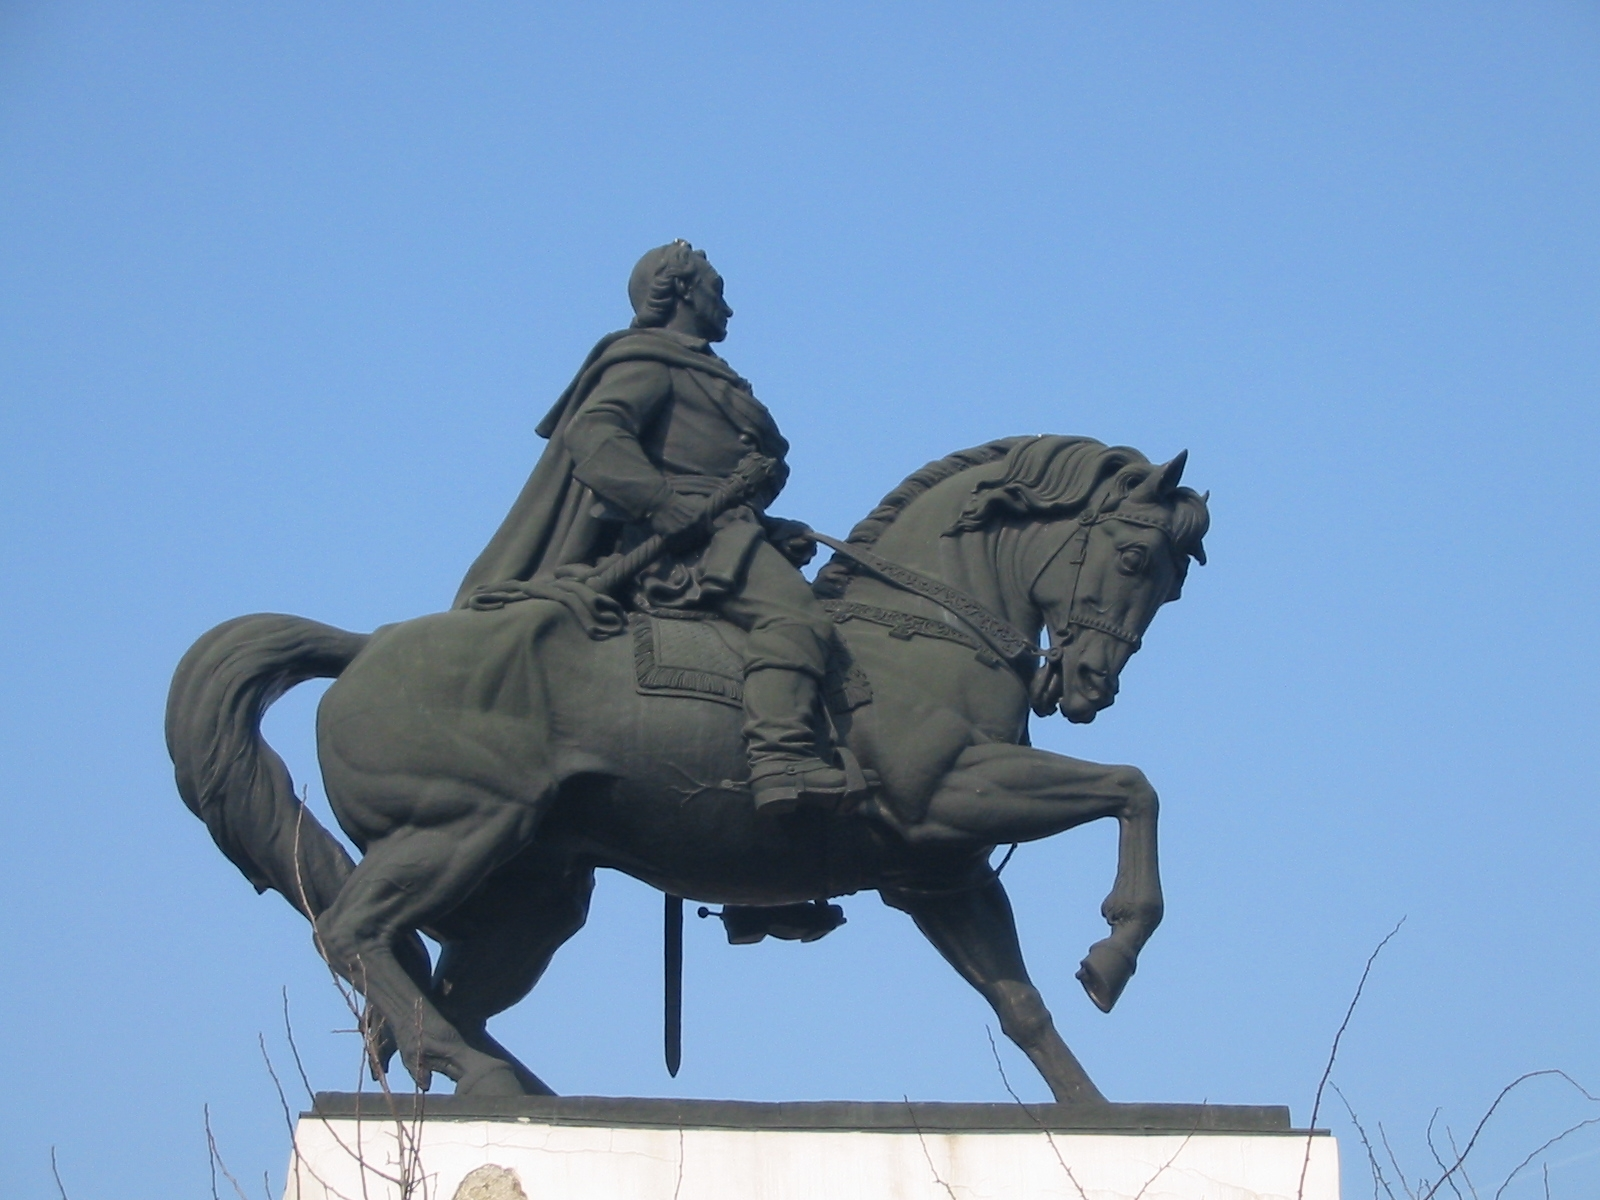 Fişier:Suvorov guarding the ramna river 1.jpg